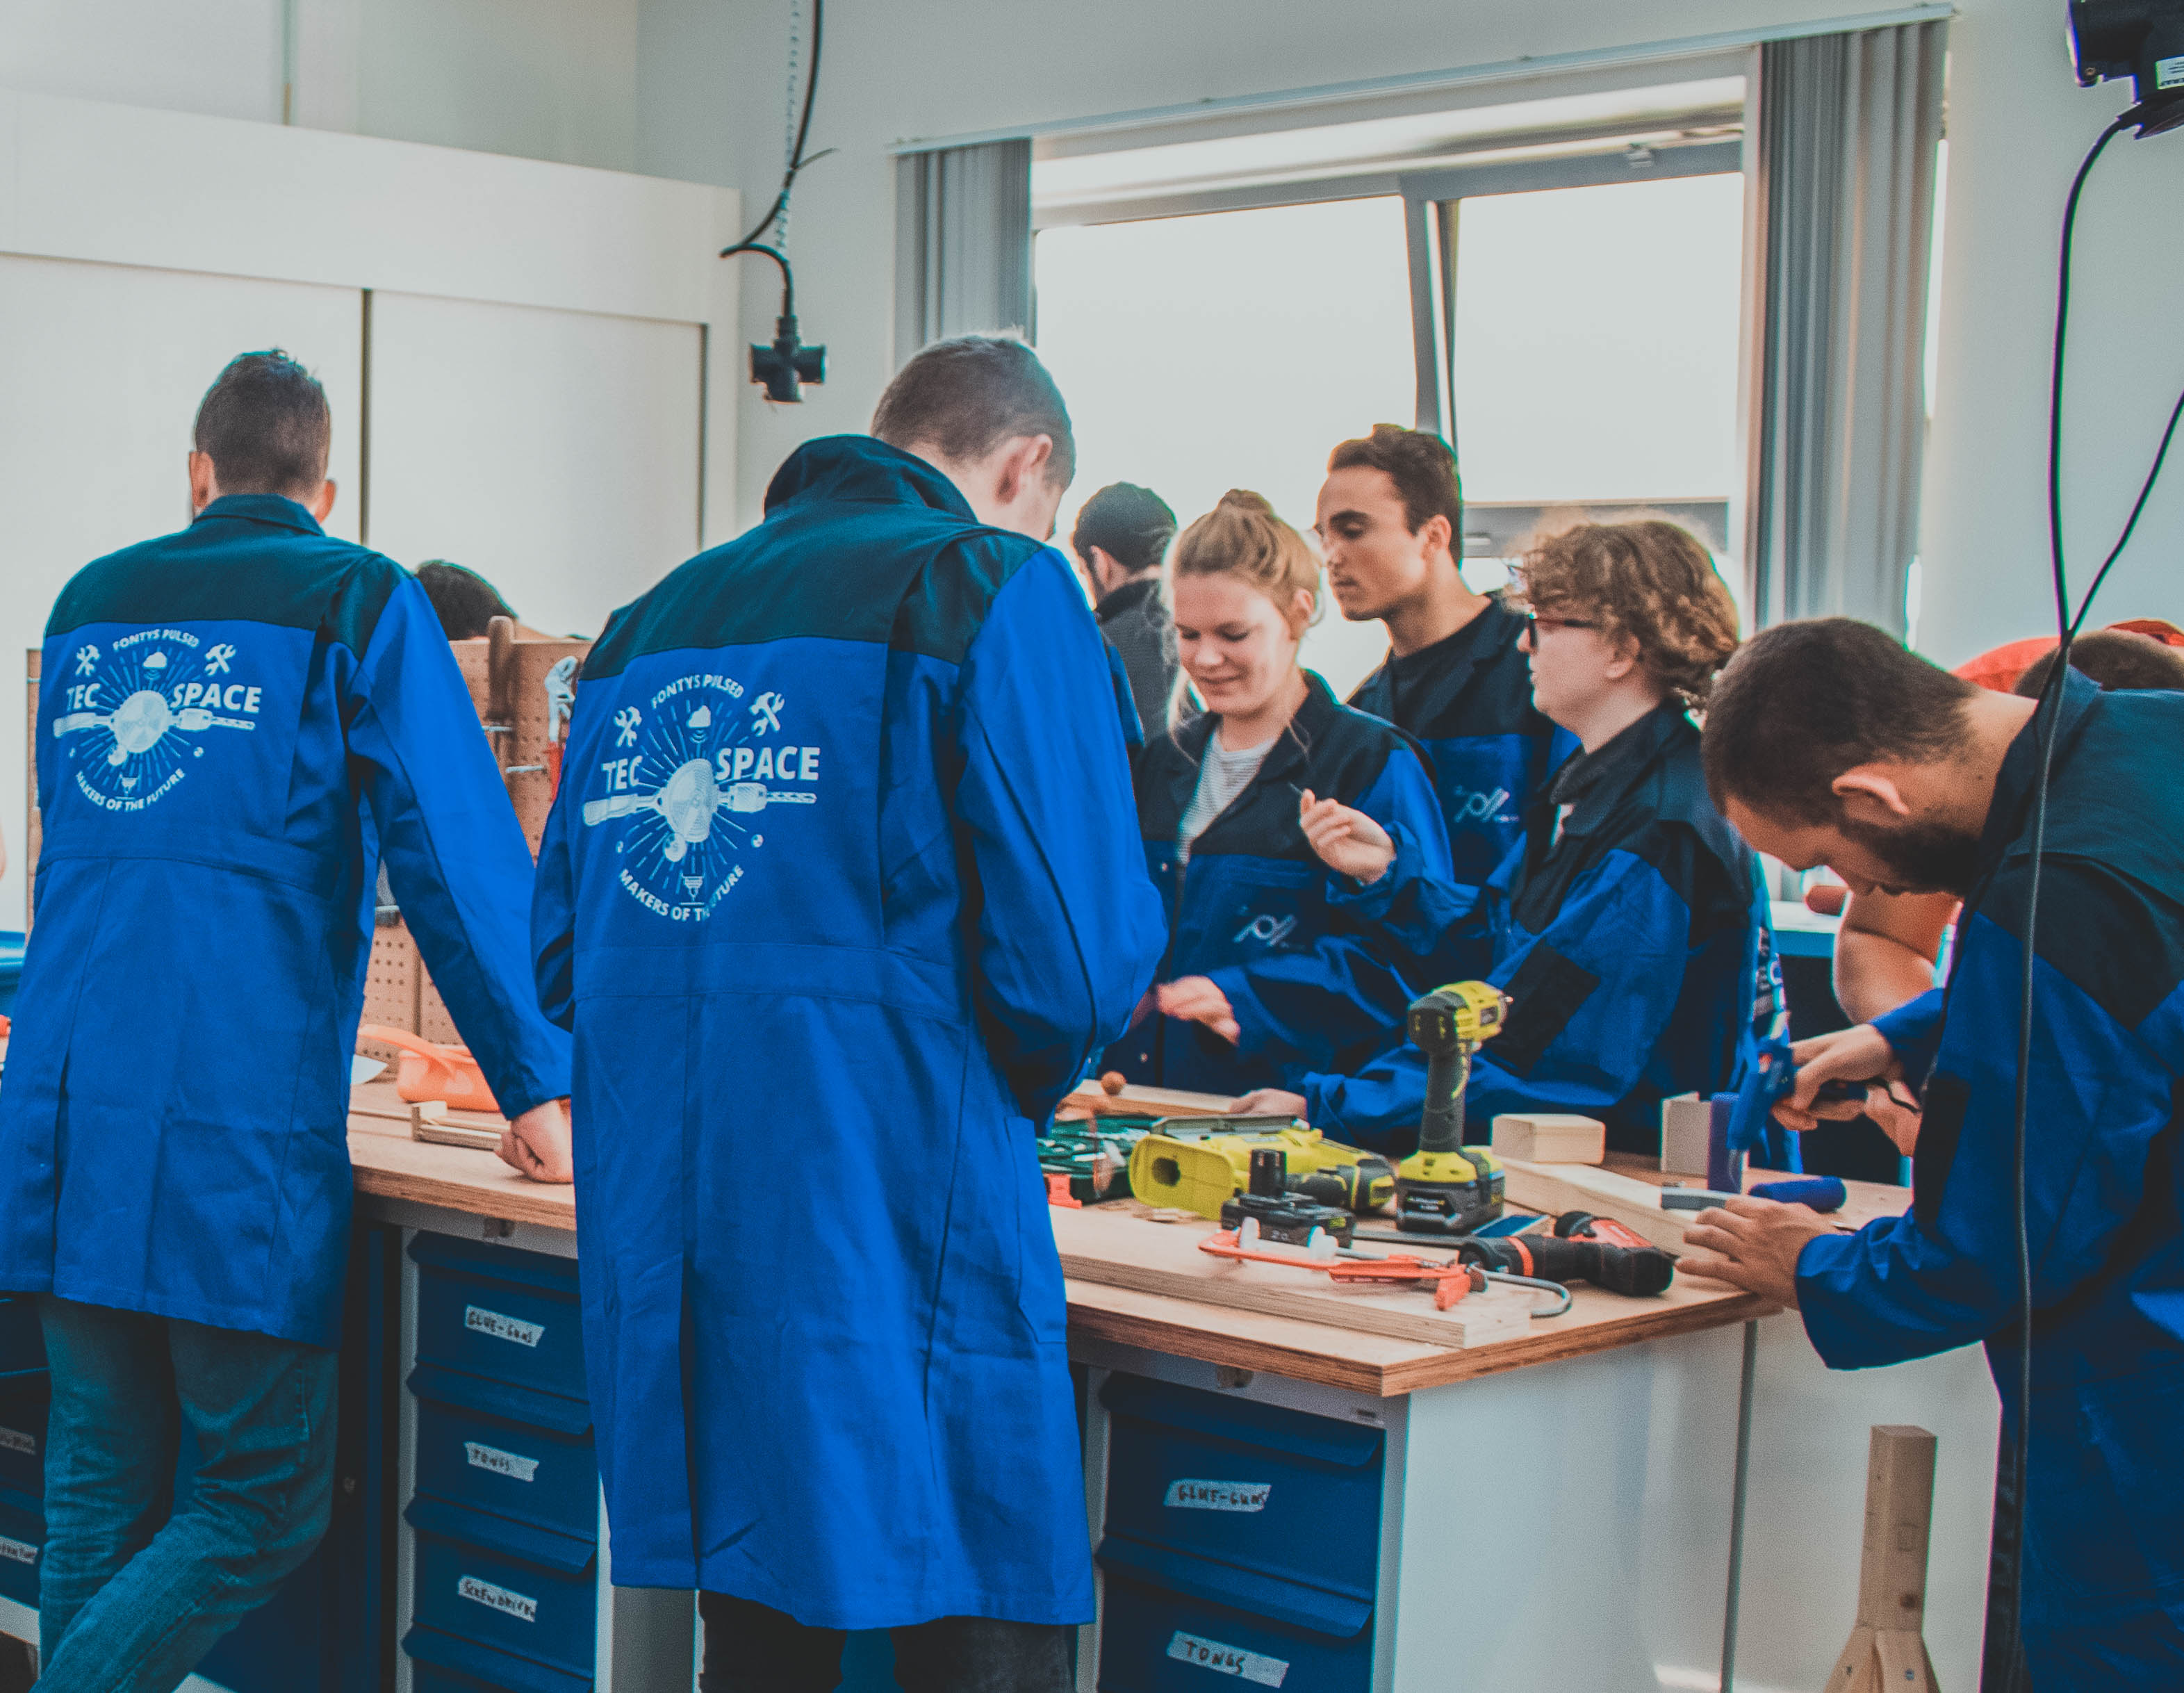 Fontys Pulsed engineering prototypes together in the TEC space